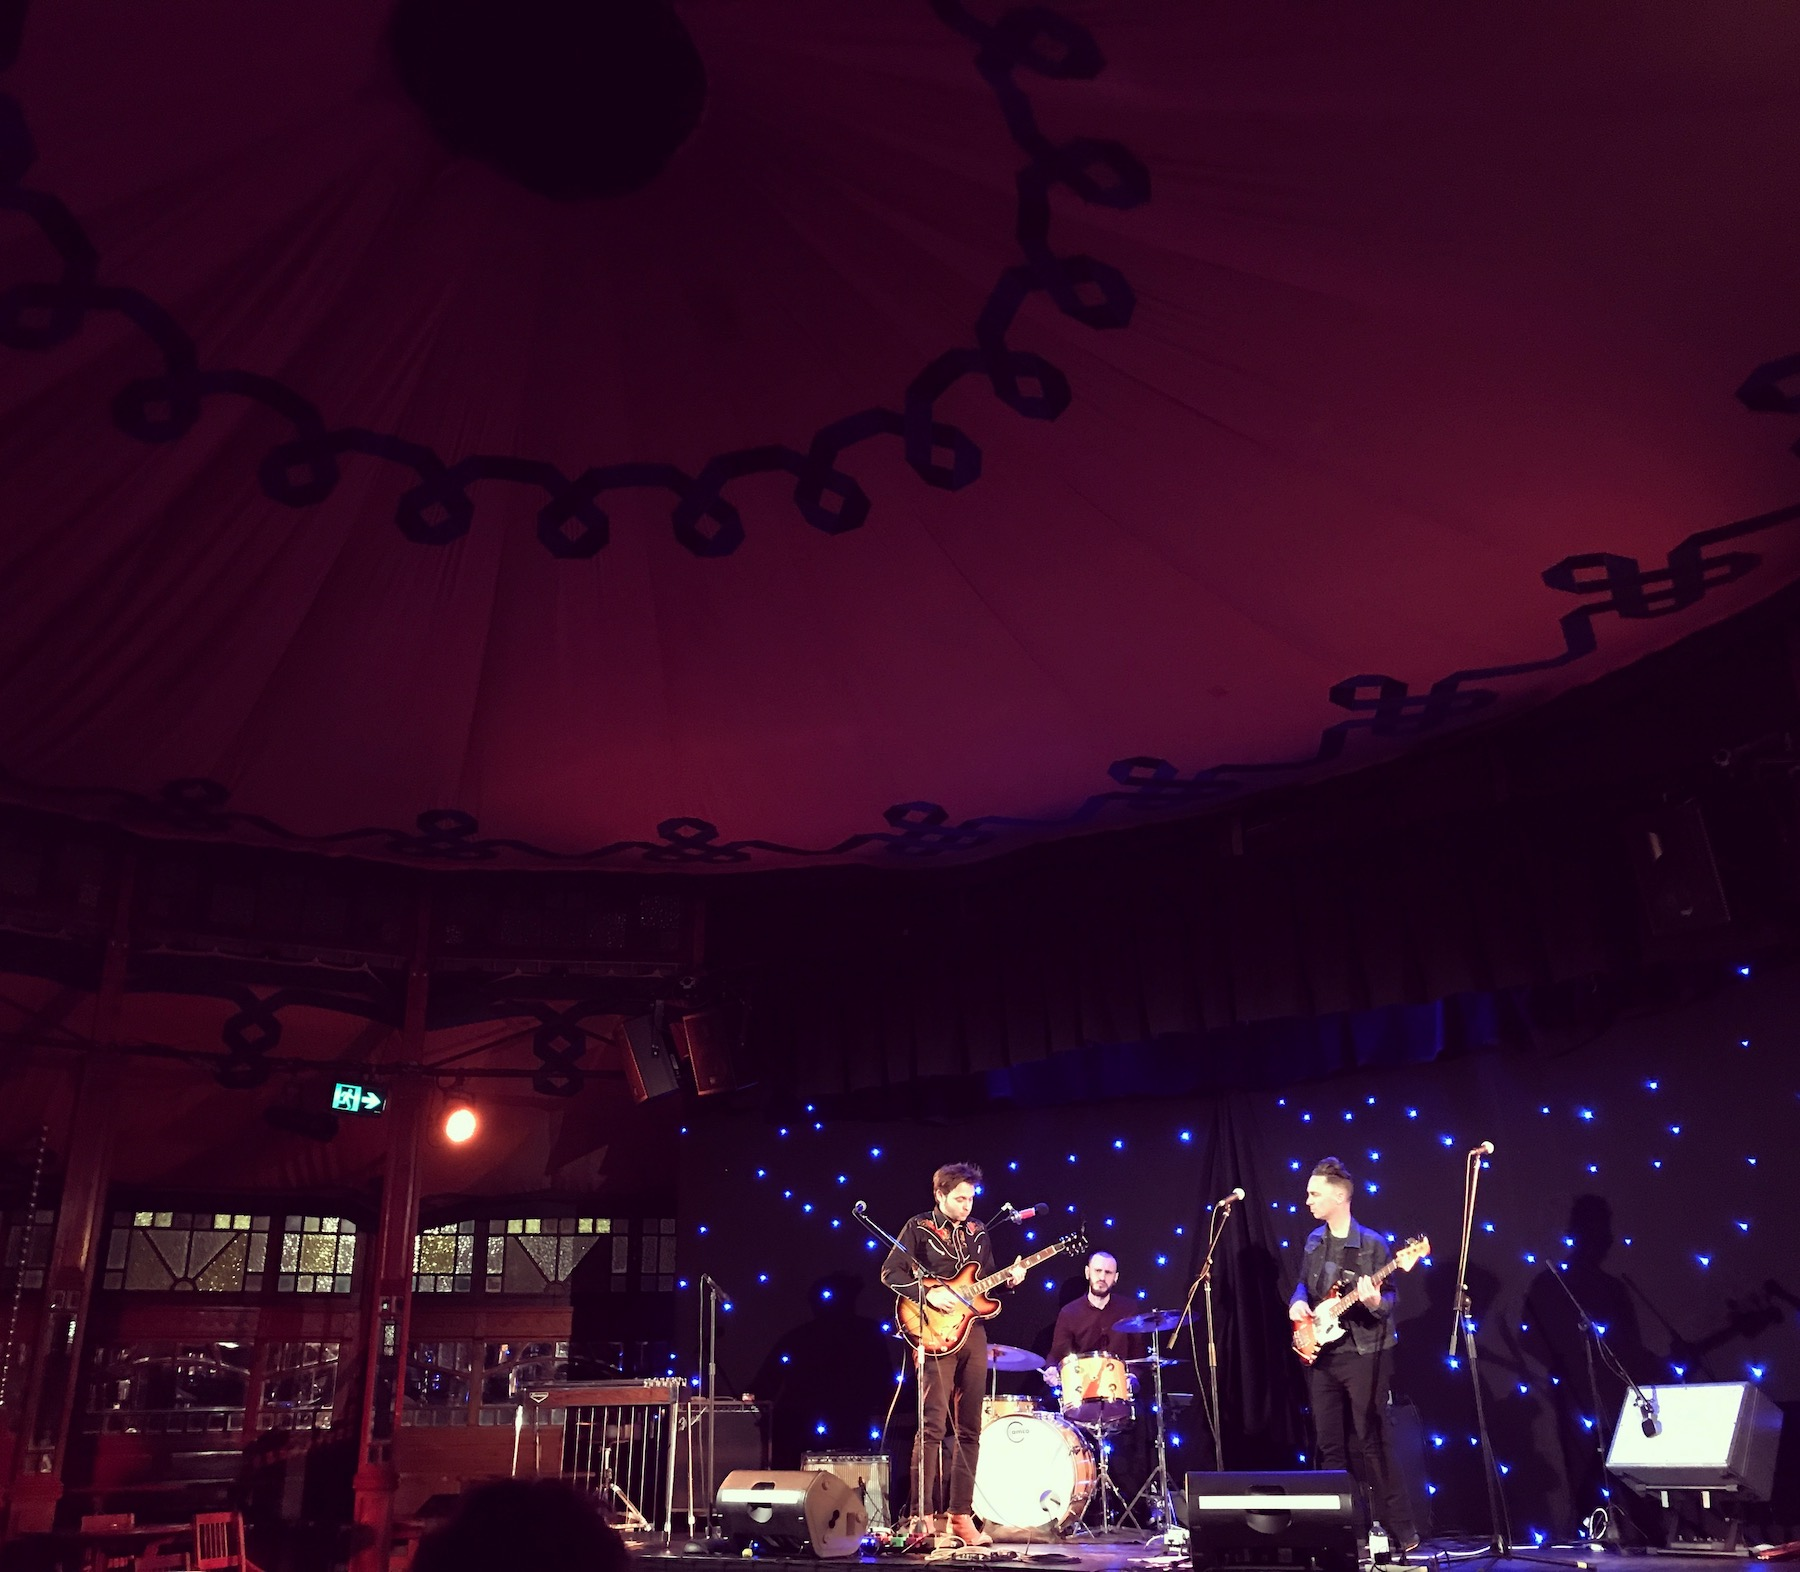 CP Experiment at Melba Spiegeltent, June 1st, 2018. Photo by Brooke Russell.